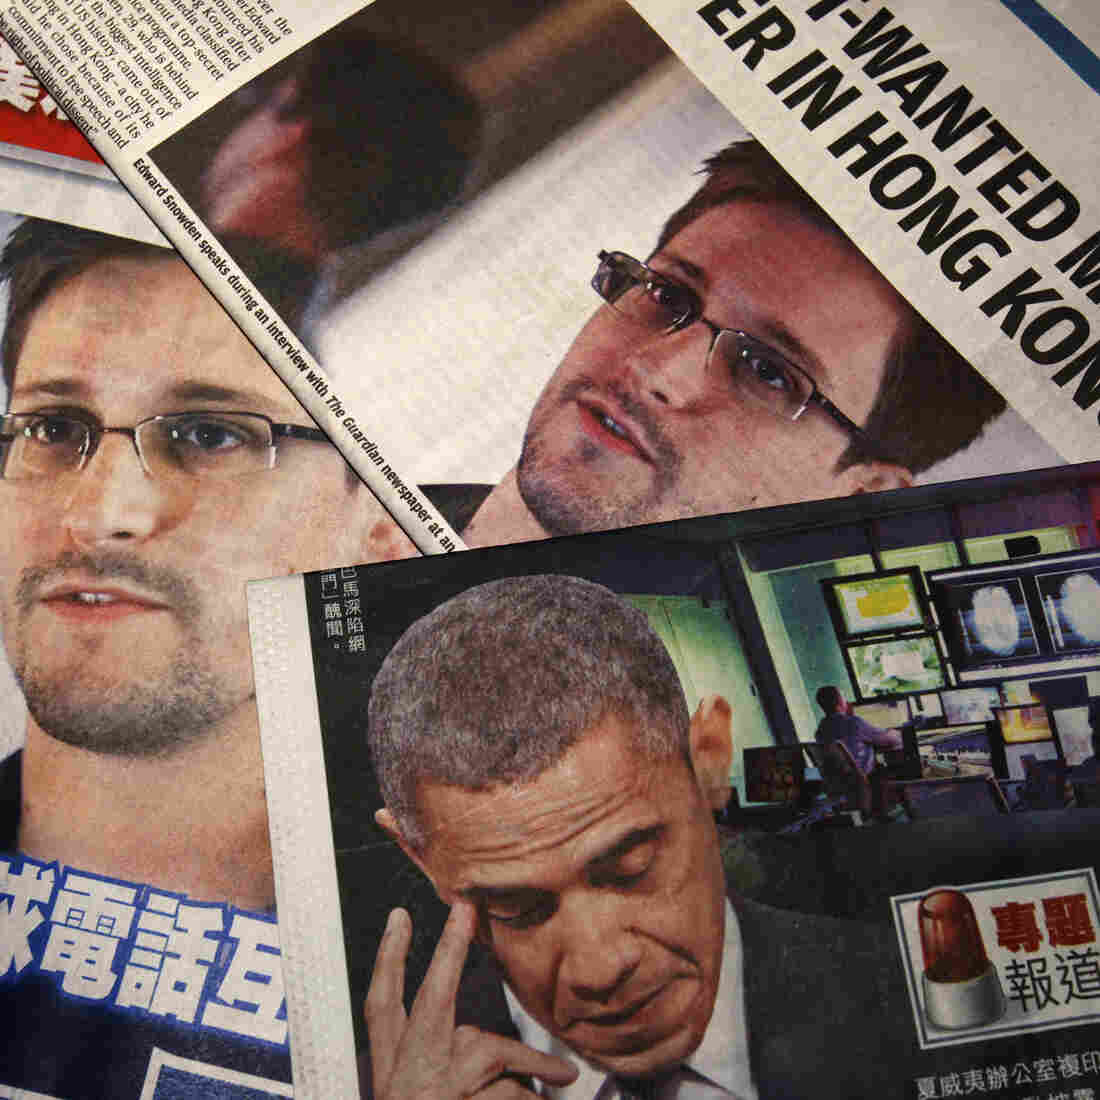 Edward Snowden's revelations about National Security Agency have been front page news around the world, including in Hong Kong — where he was last seen.